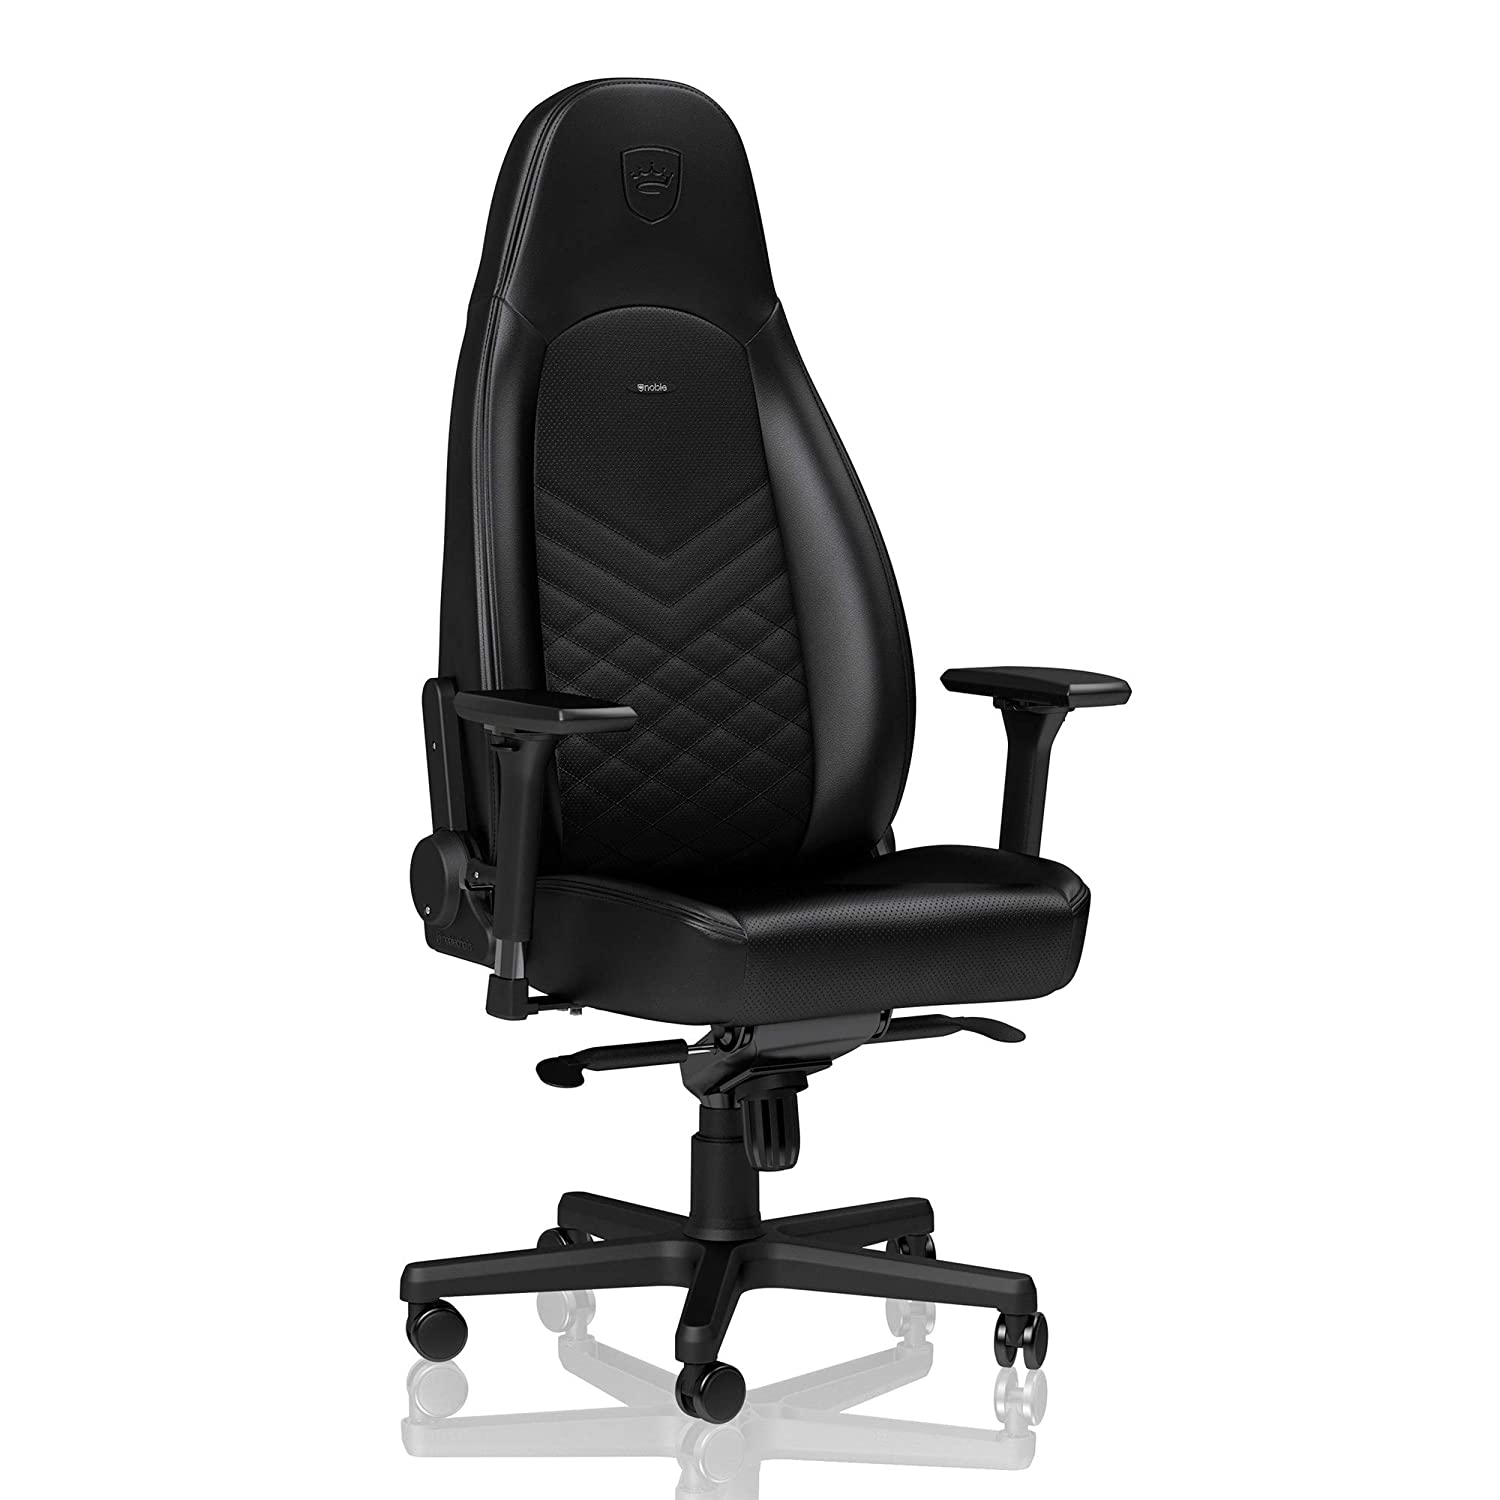 Wondrous Top 13 Best Gaming Chairs 2019 Editors Pick Omnicore Alphanode Cool Chair Designs And Ideas Alphanodeonline